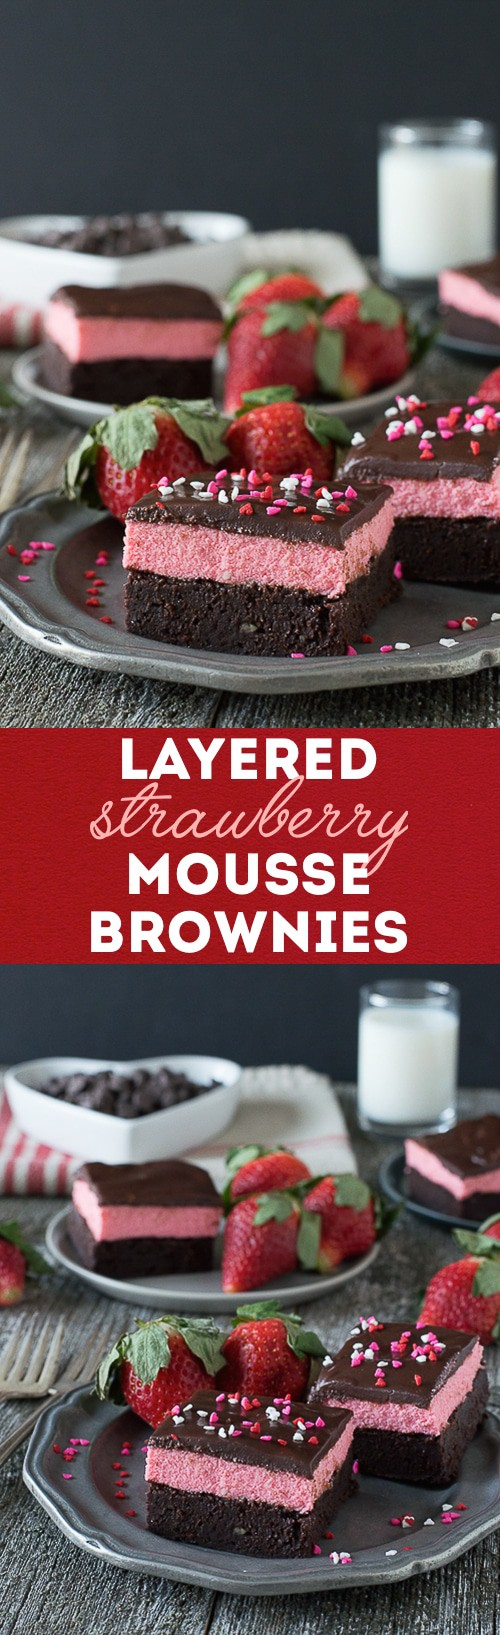 Layered Strawberry Mousse Brownie Recipe - a rich chocolate brownie topped with strawberry mousse and chocolate ganache. A favorite for Valentine's Day!